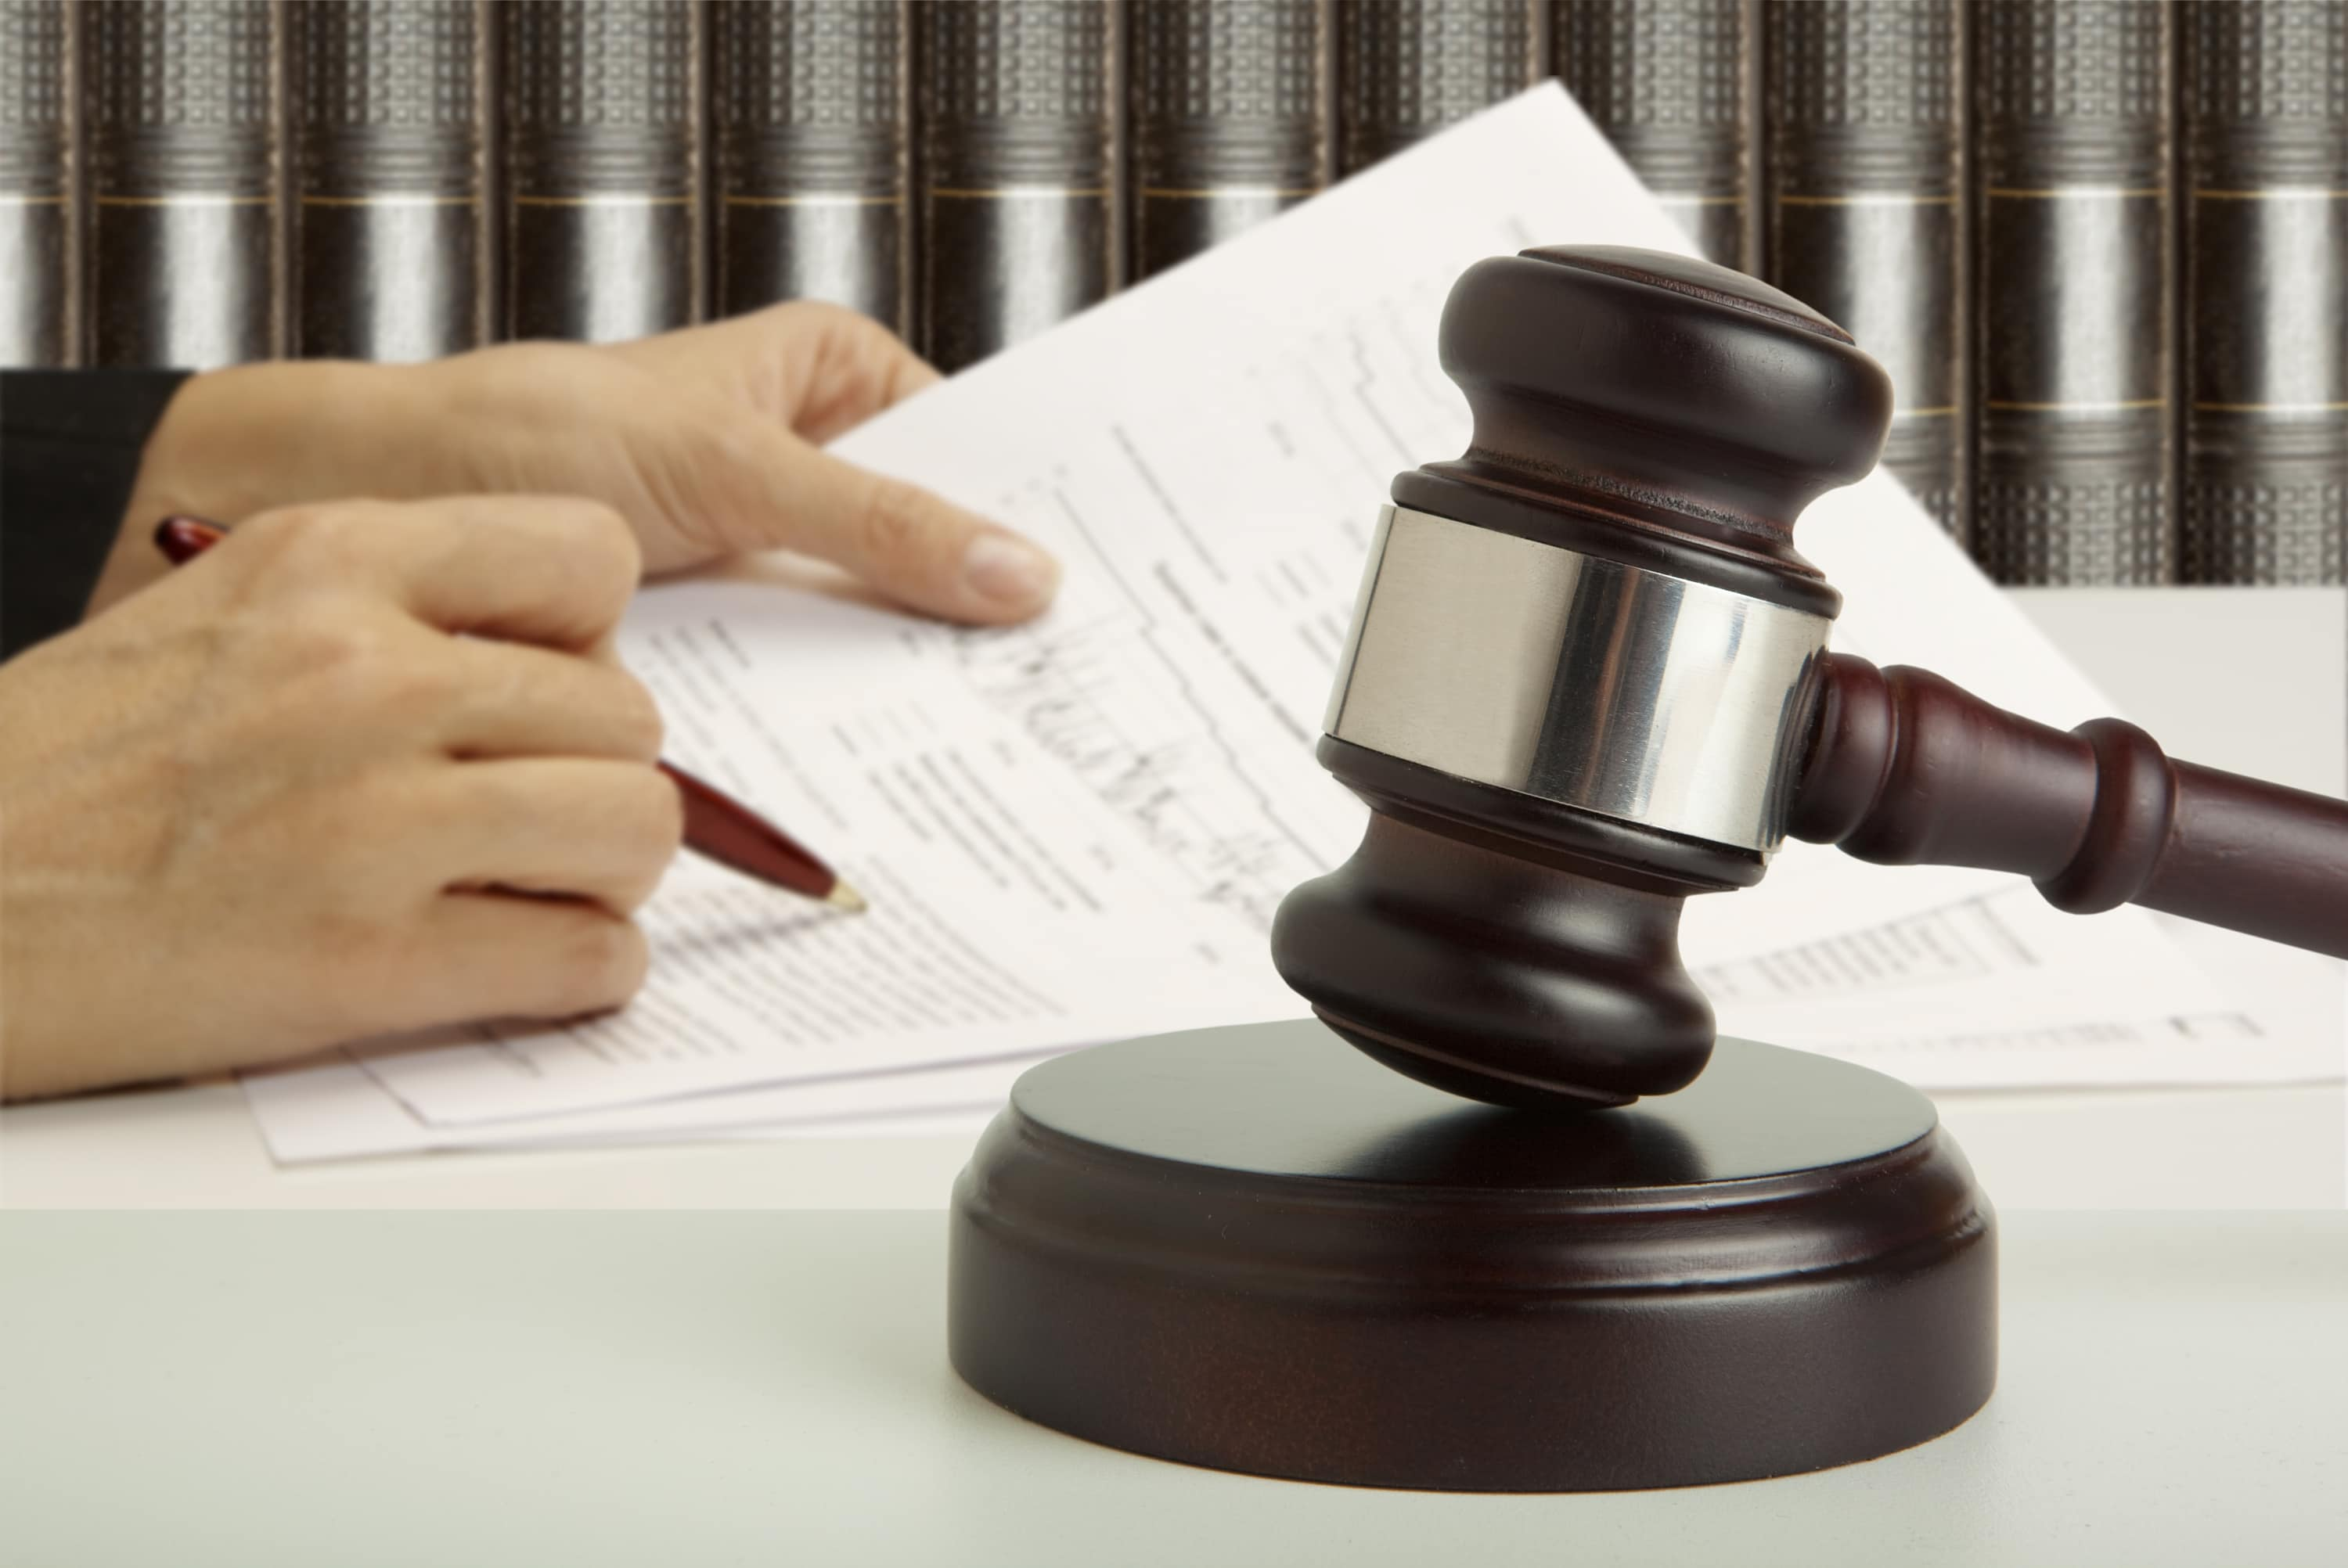 How to Sue Your Landlord - Is It Worth It?